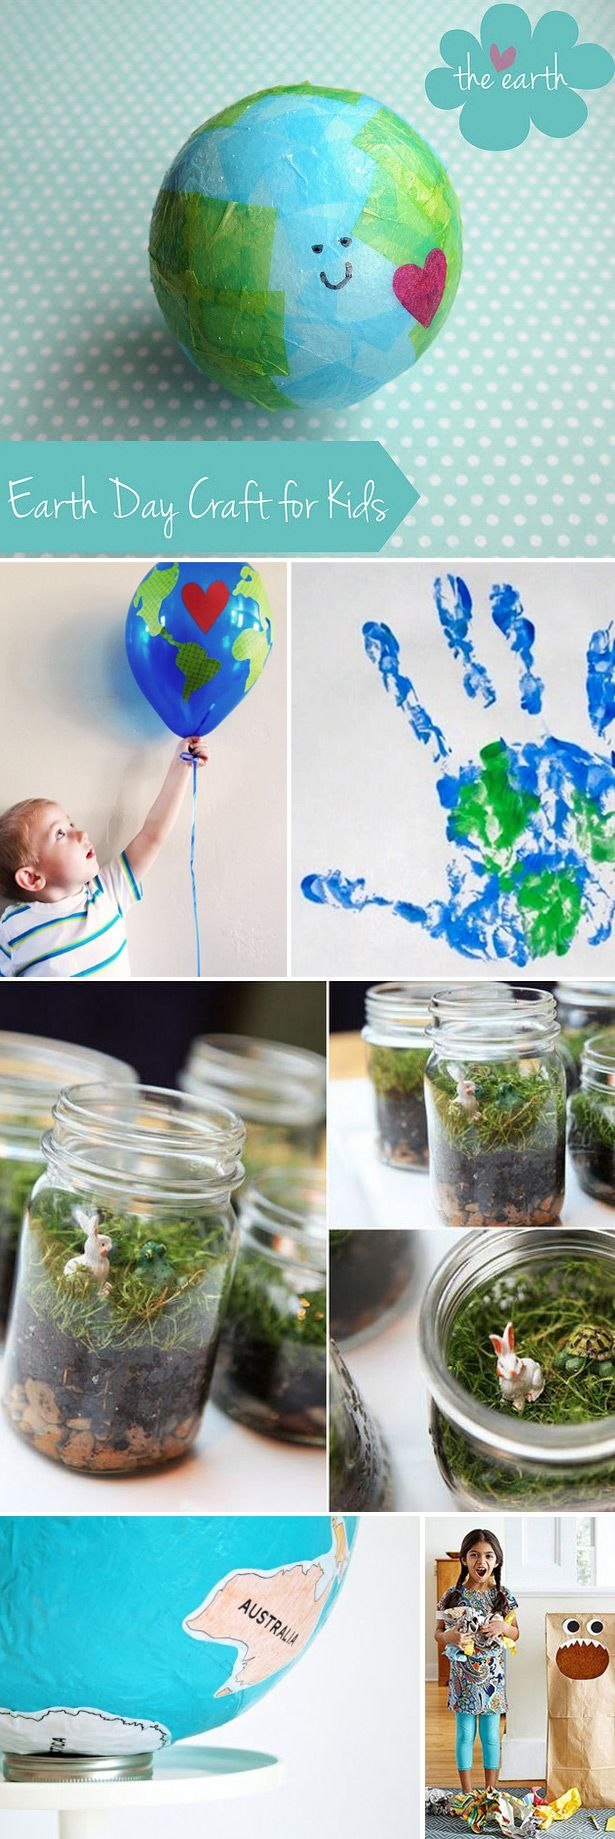 40 of the Best Art Projects for Kids - Left Brain Craft Brain